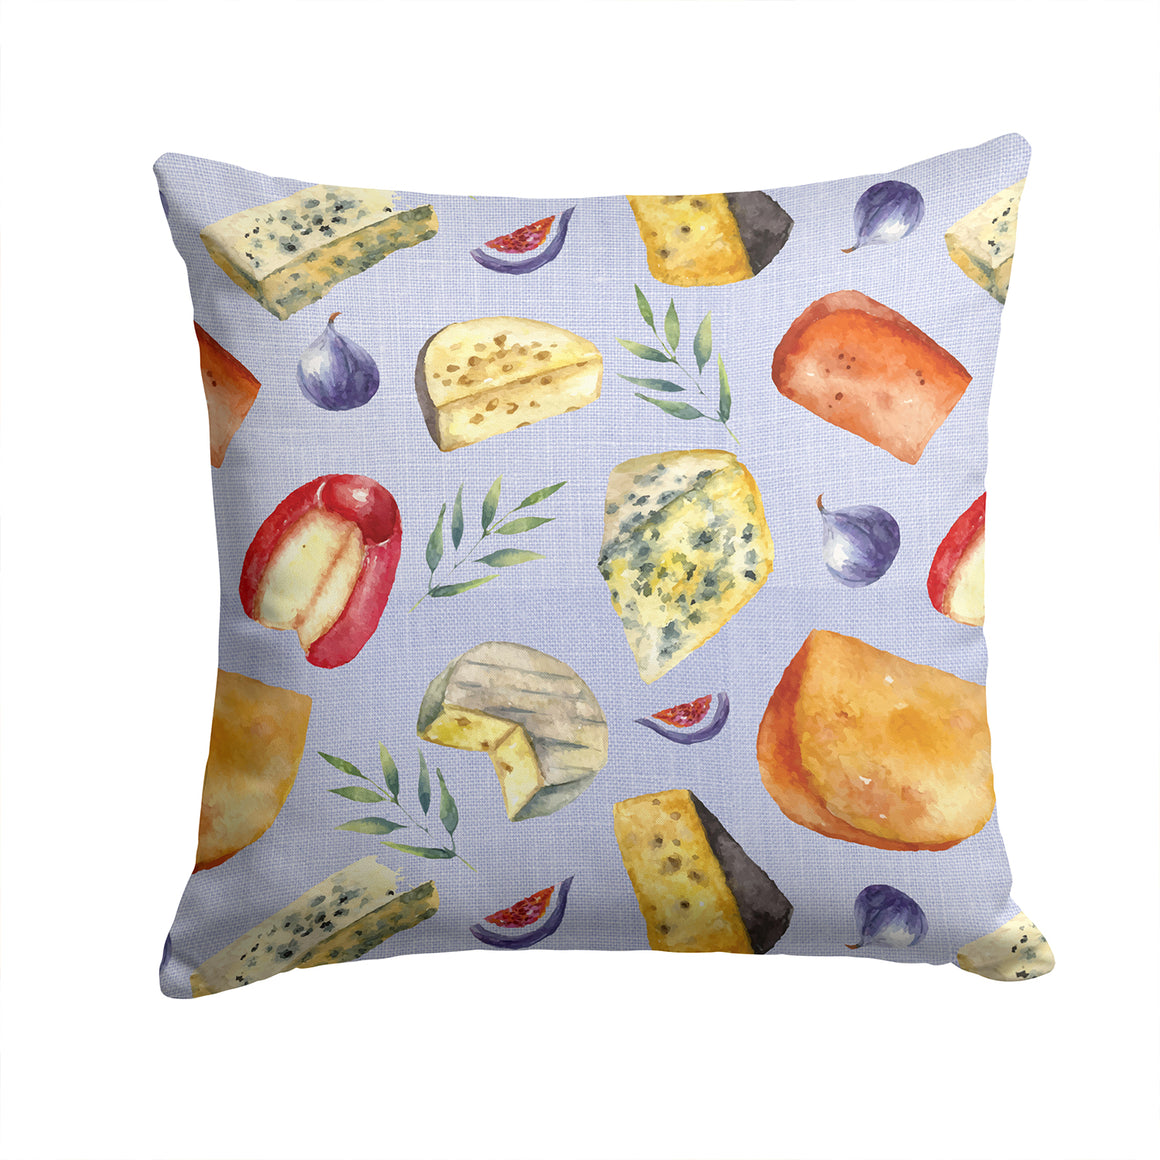 Buy this Assortment of Cheeses Fabric Decorative Pillow BB5198PW1414